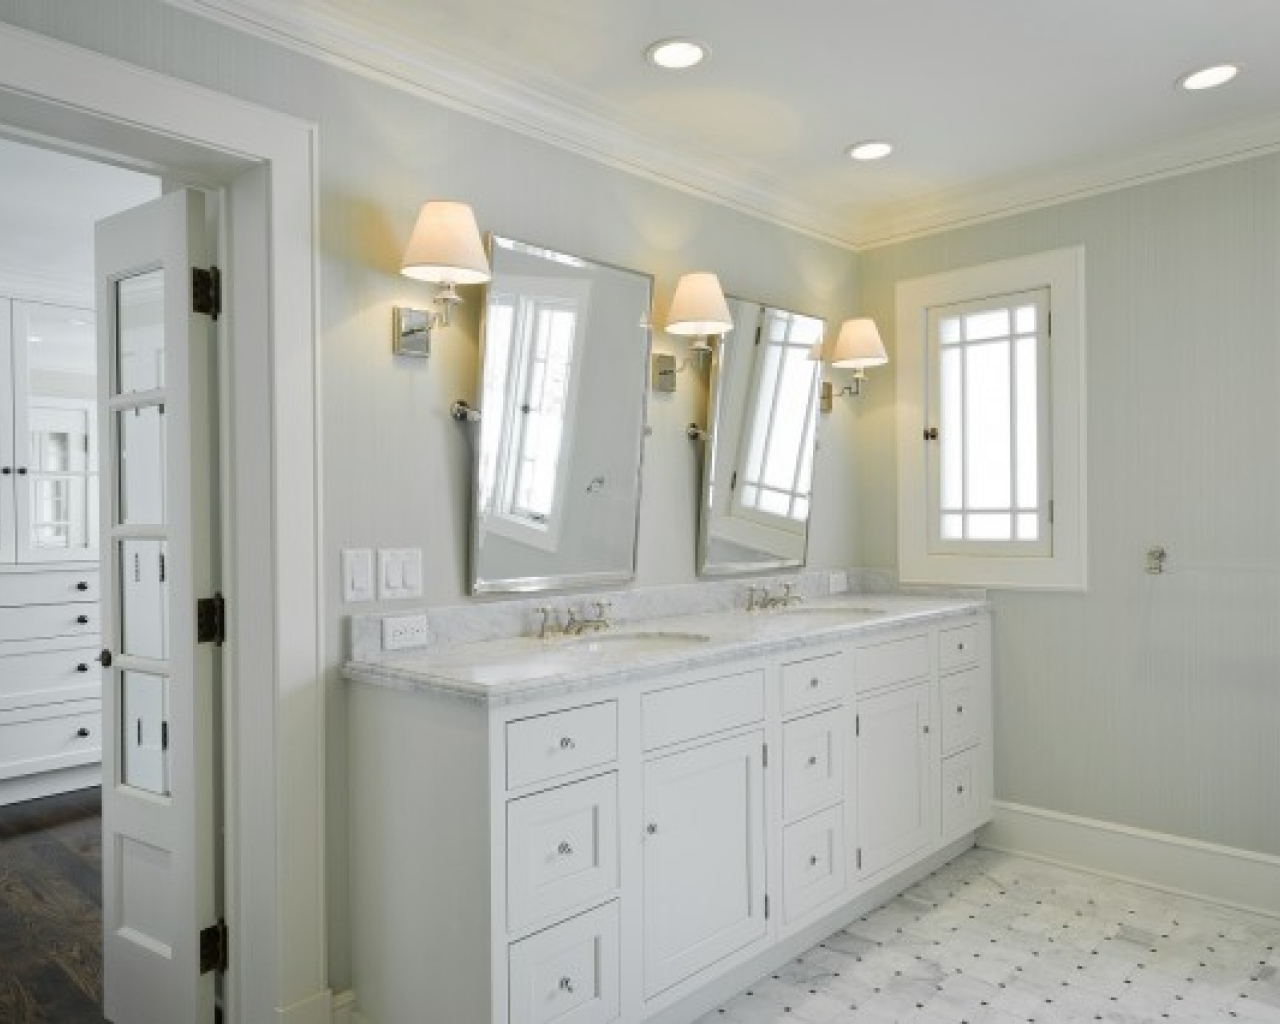 Newest Wall Mirrors For Bathroom Vanities With Tilting Bathroom Wall Mirror Tilt Bathroom Vanity Mirrors 59 (Gallery 6 of 20)